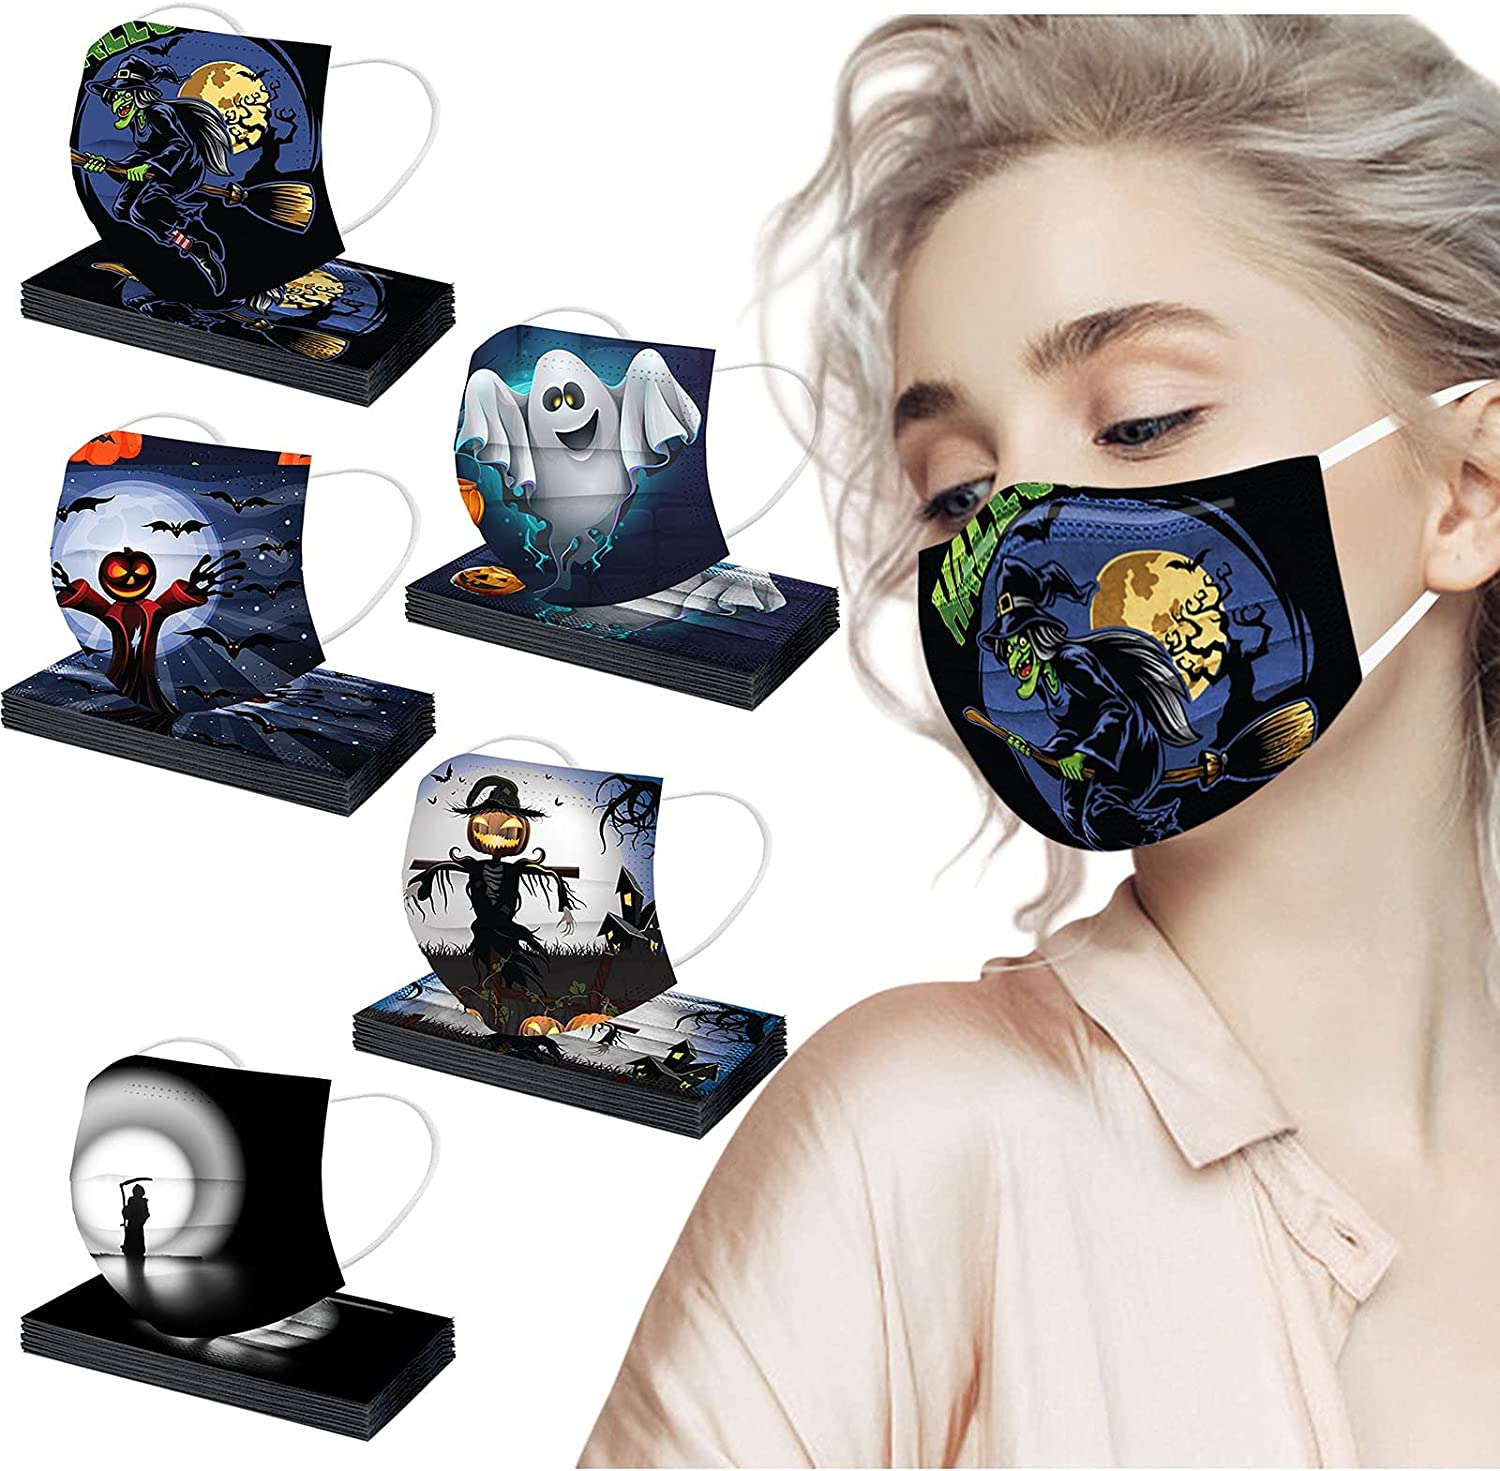 50PC Halloween Disposable Face Masks 3Ply Nonwoven Shield Breathable Filter Protectors Safety Mouth Cover for Women Men